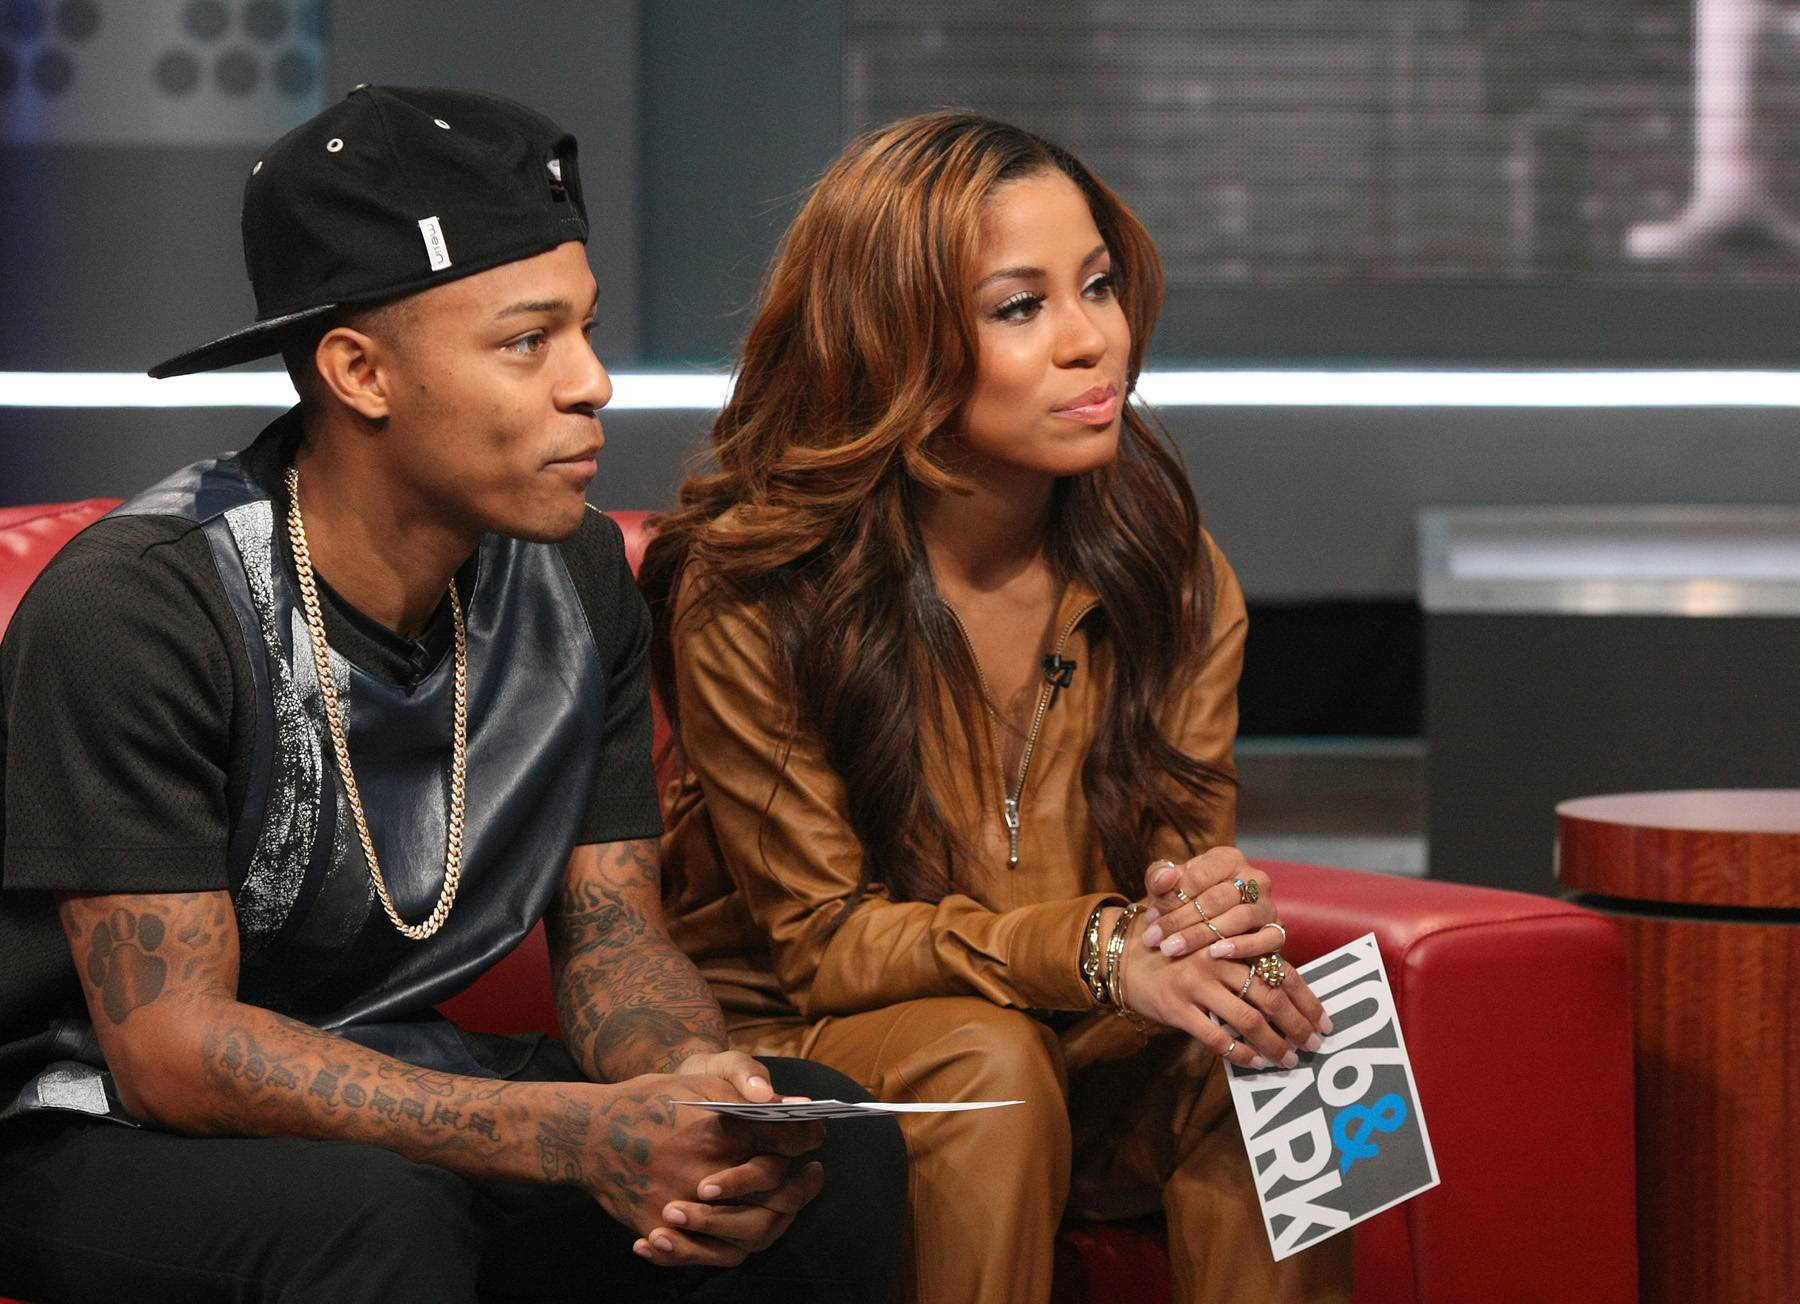 Paying Attention to a Pro - (Photo: Bennett Raglin/BET/Getty Images for BET)